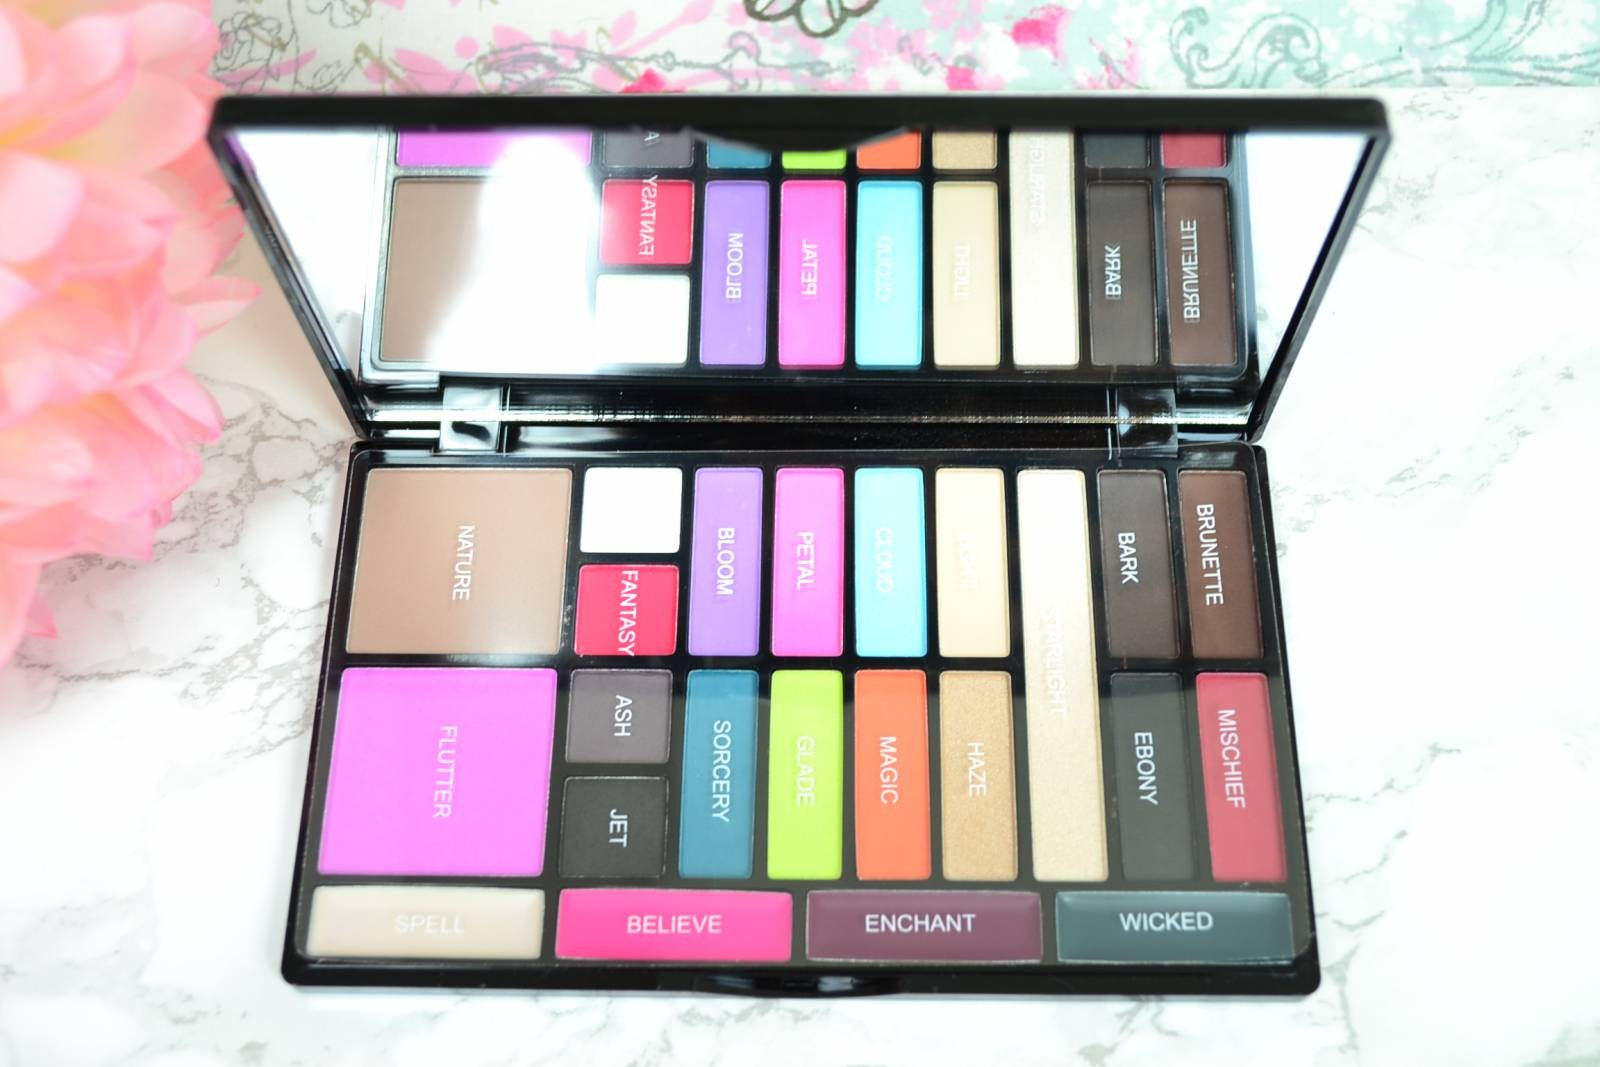 freedom-makeup-house-of-glamdolls-palette-review